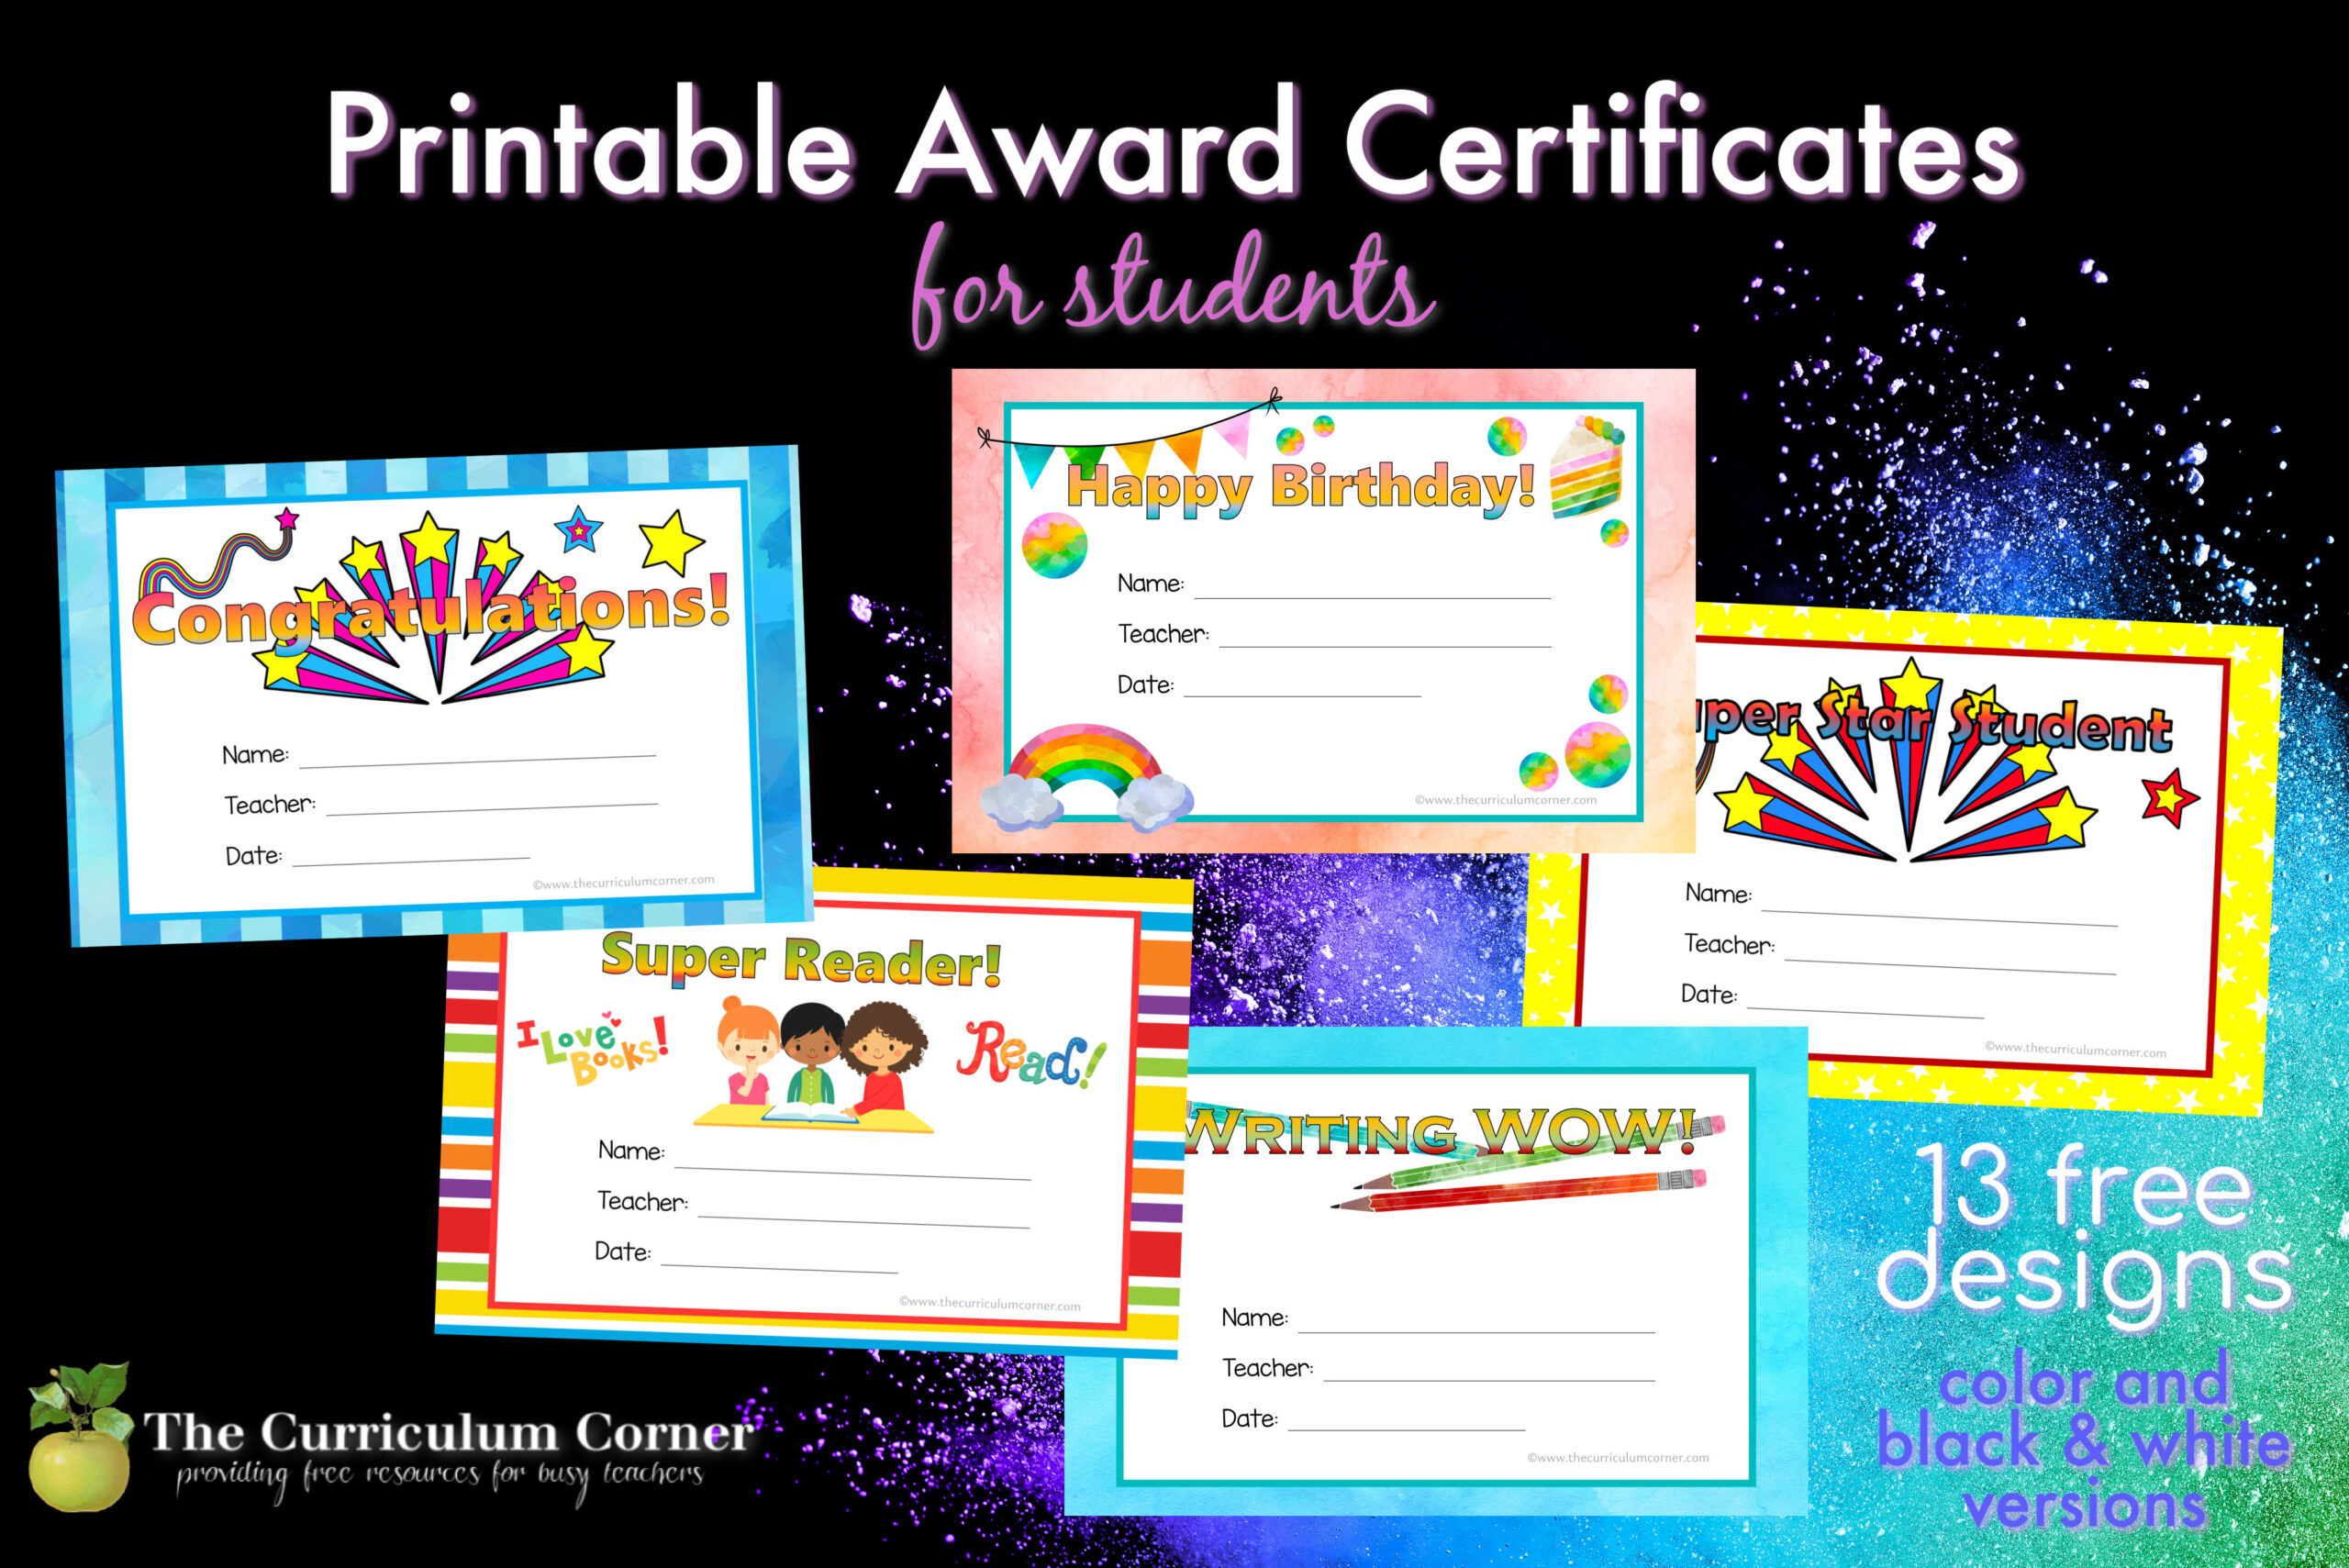 Printable Award Certificates - The Curriculum Corner 21 Throughout Free Funny Award Certificate Templates For Word